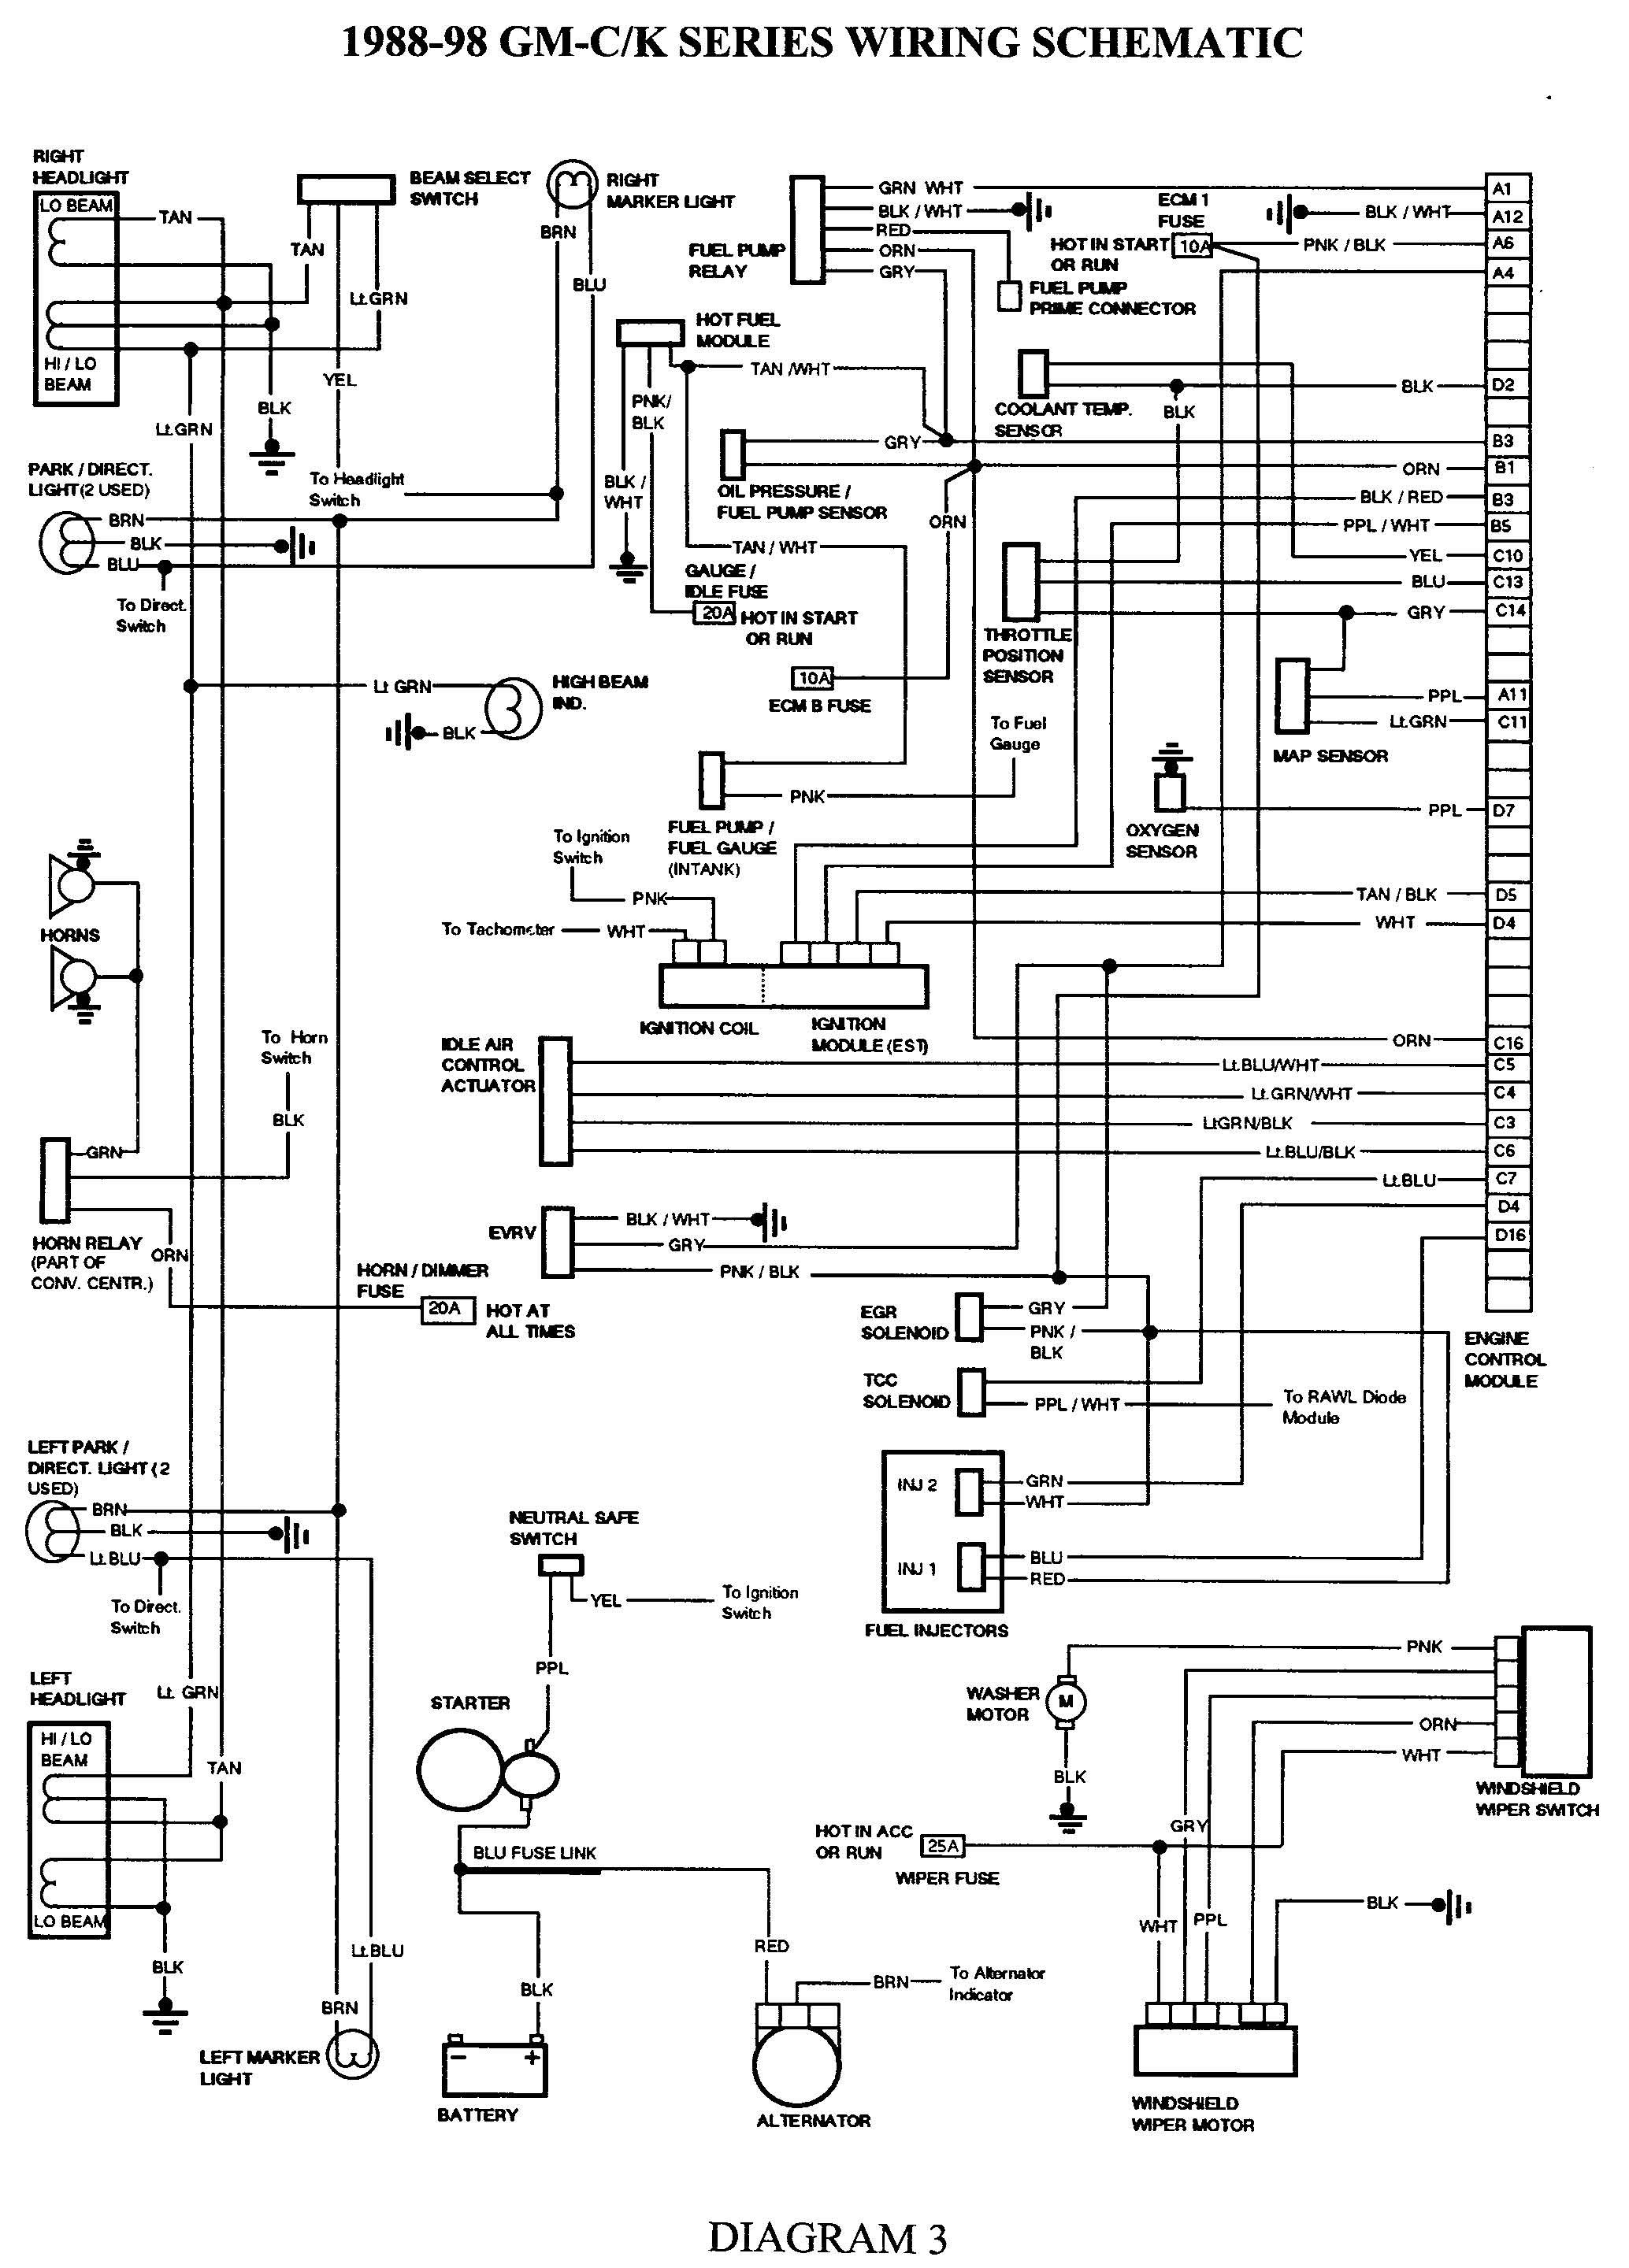 88 chevy wiring harness diagram free download wiring diagram wire rh linxglobal co TV Repair Schematic Diagram TV Schematic Diagrams